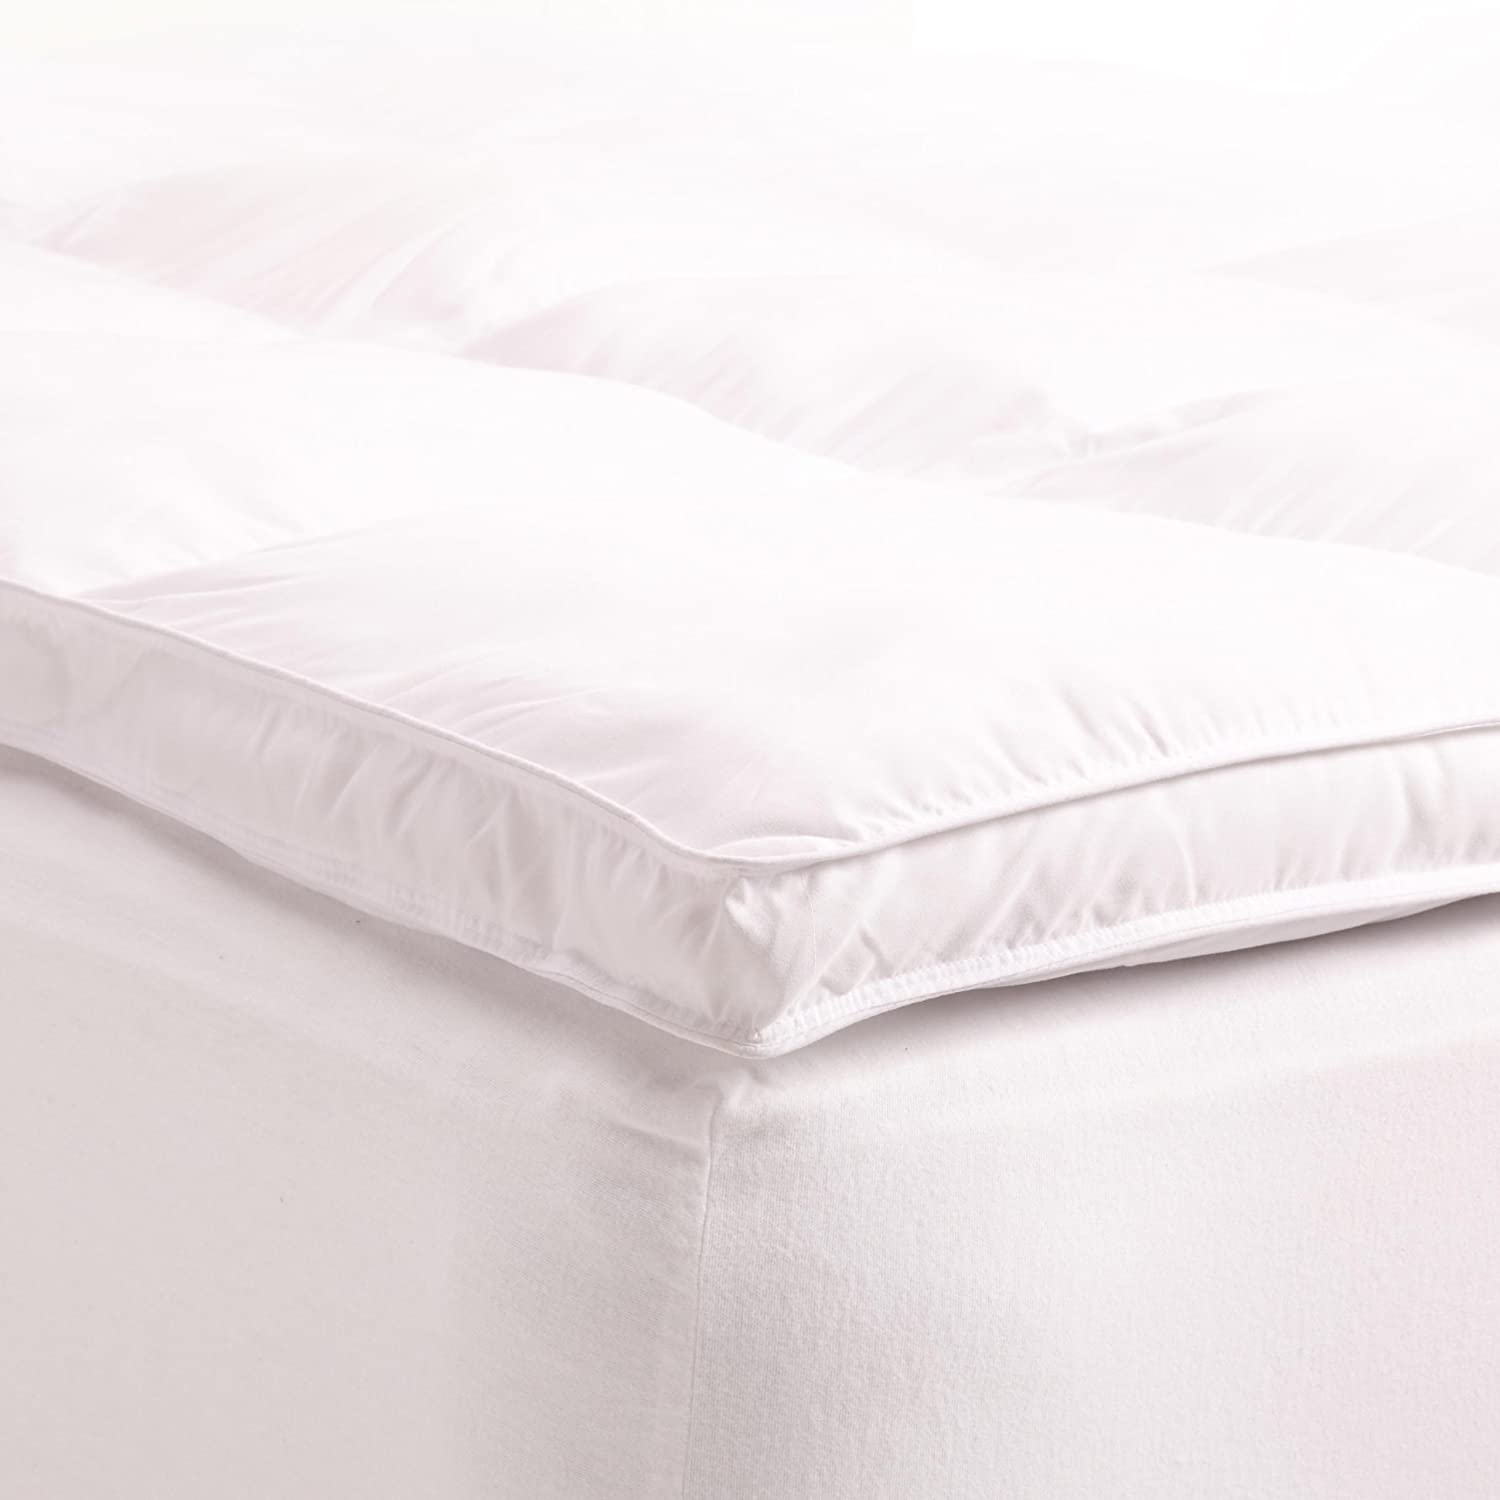 Brinkhaus Twin Topper Goose Down Feather Mattress Topper